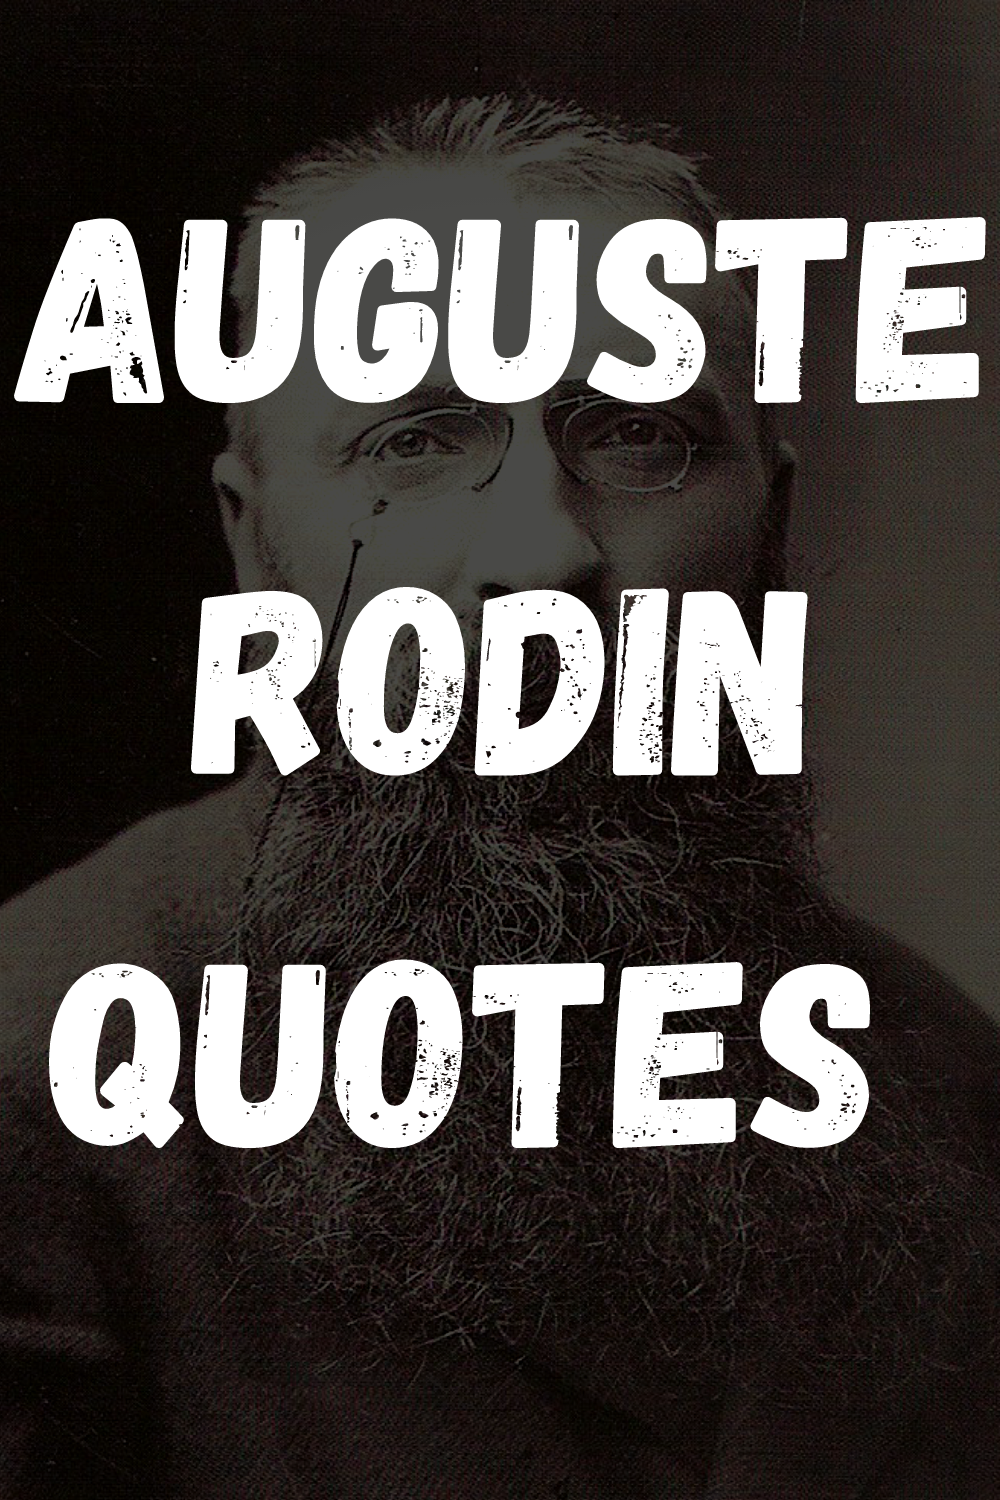 Auguste Rodin Quotes [Famous Quotes About Beauty]